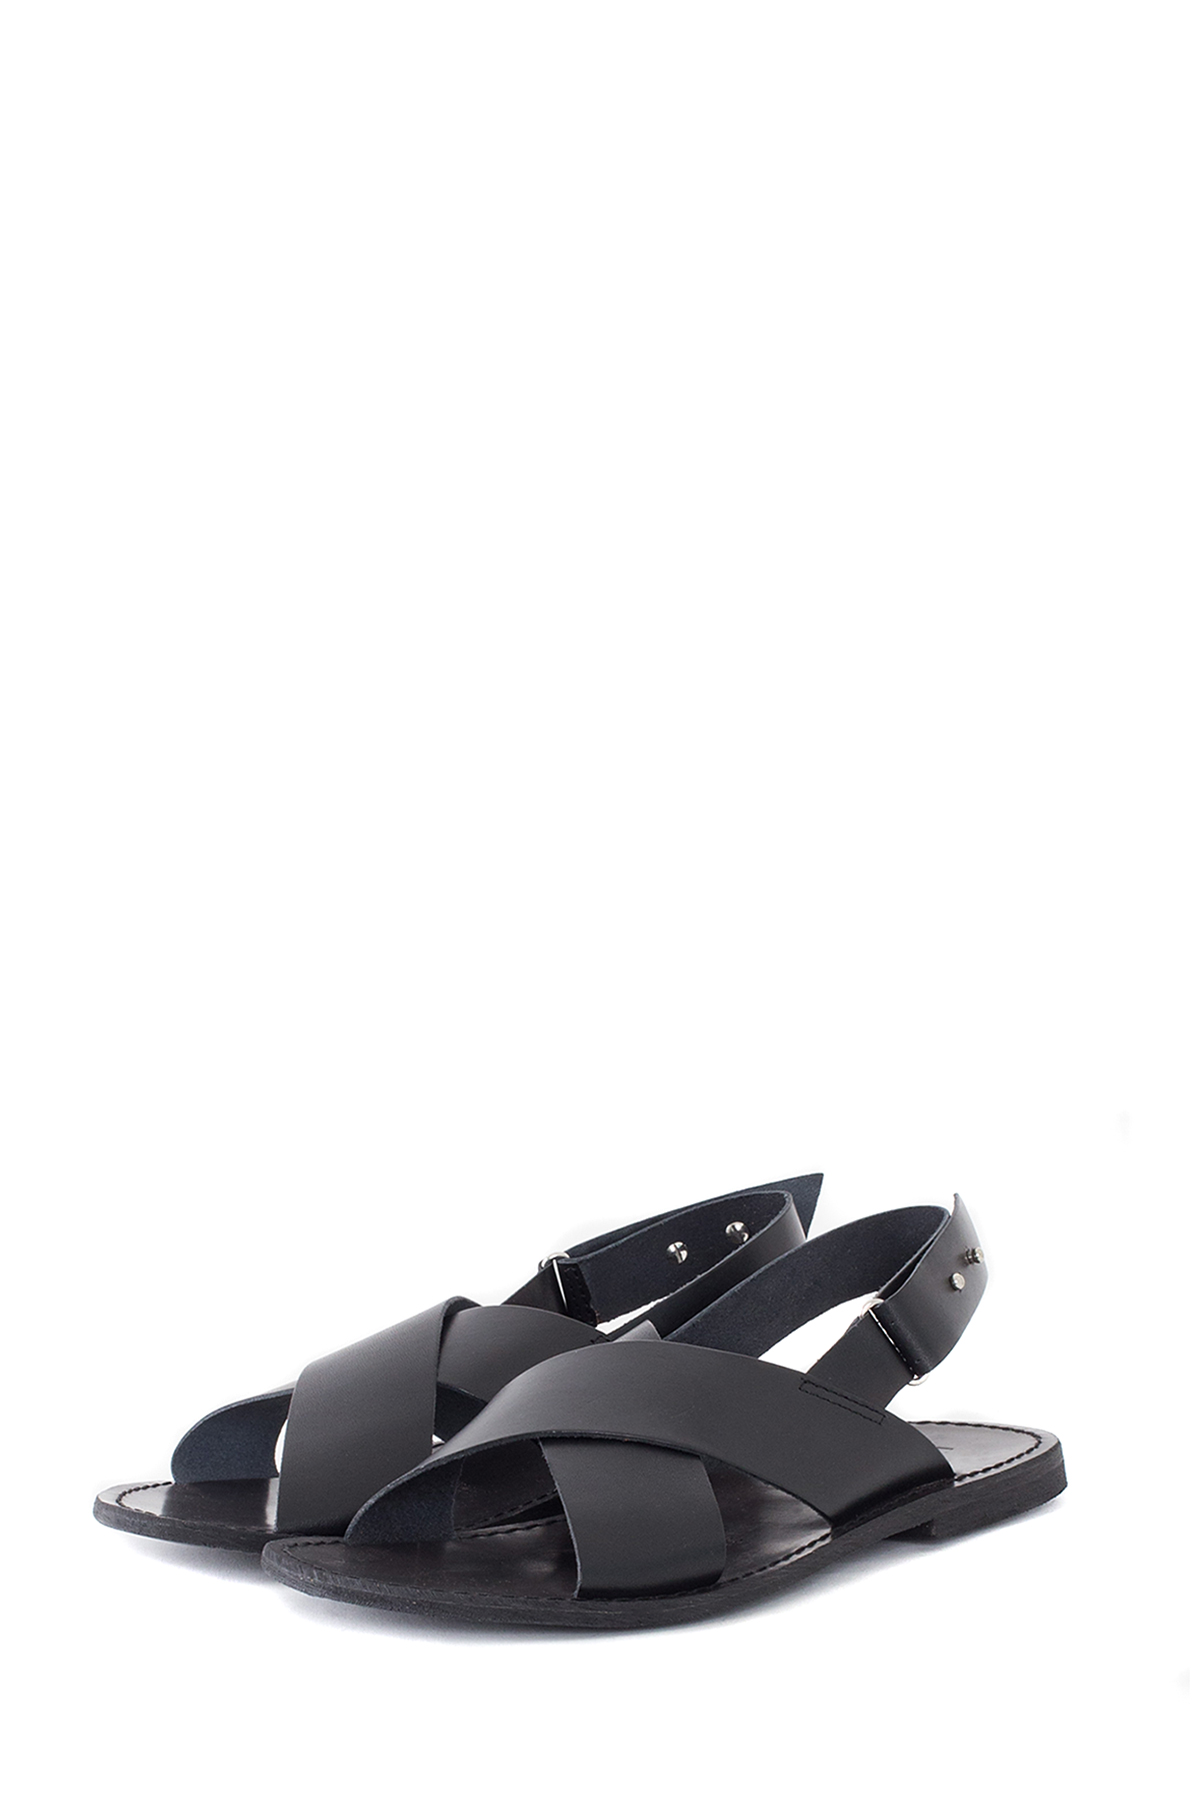 ATTIMONELLI'S : Soft Leather Sandals (Black)